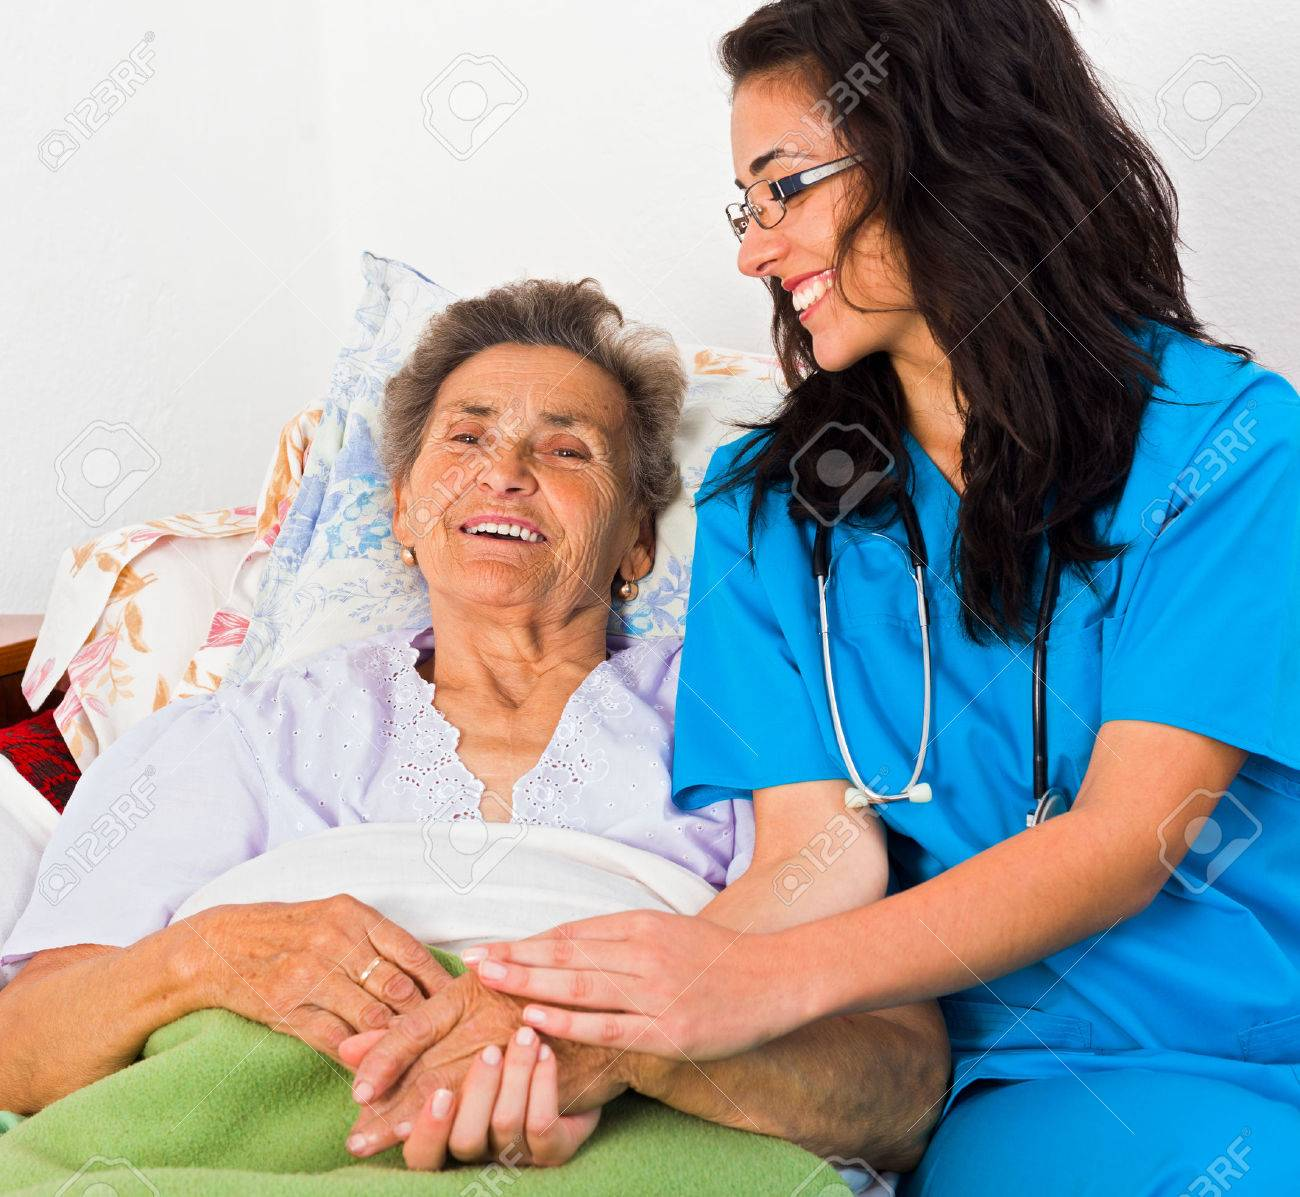 Kind nurse easing elderly lady's days in nursing home with care help and joy. Stock Photo - 42100065